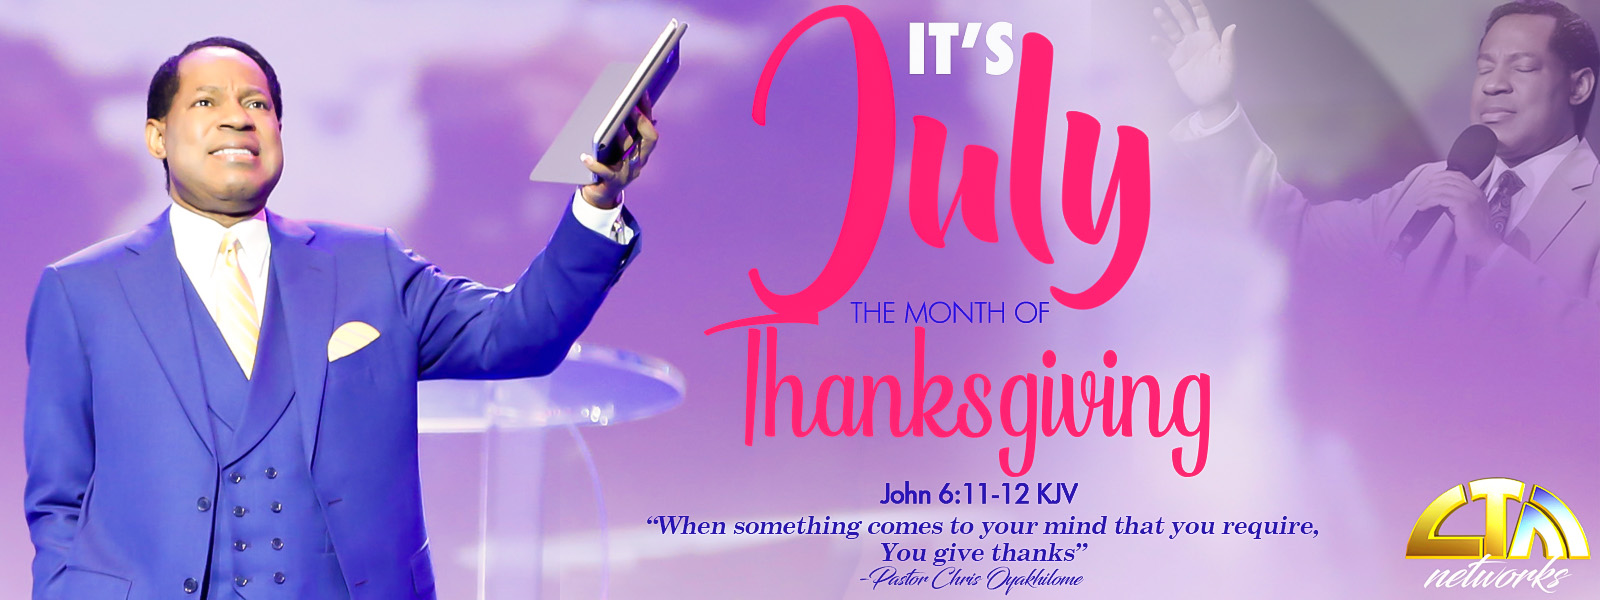 JULY-THE MONTH OF THANKSGIVING